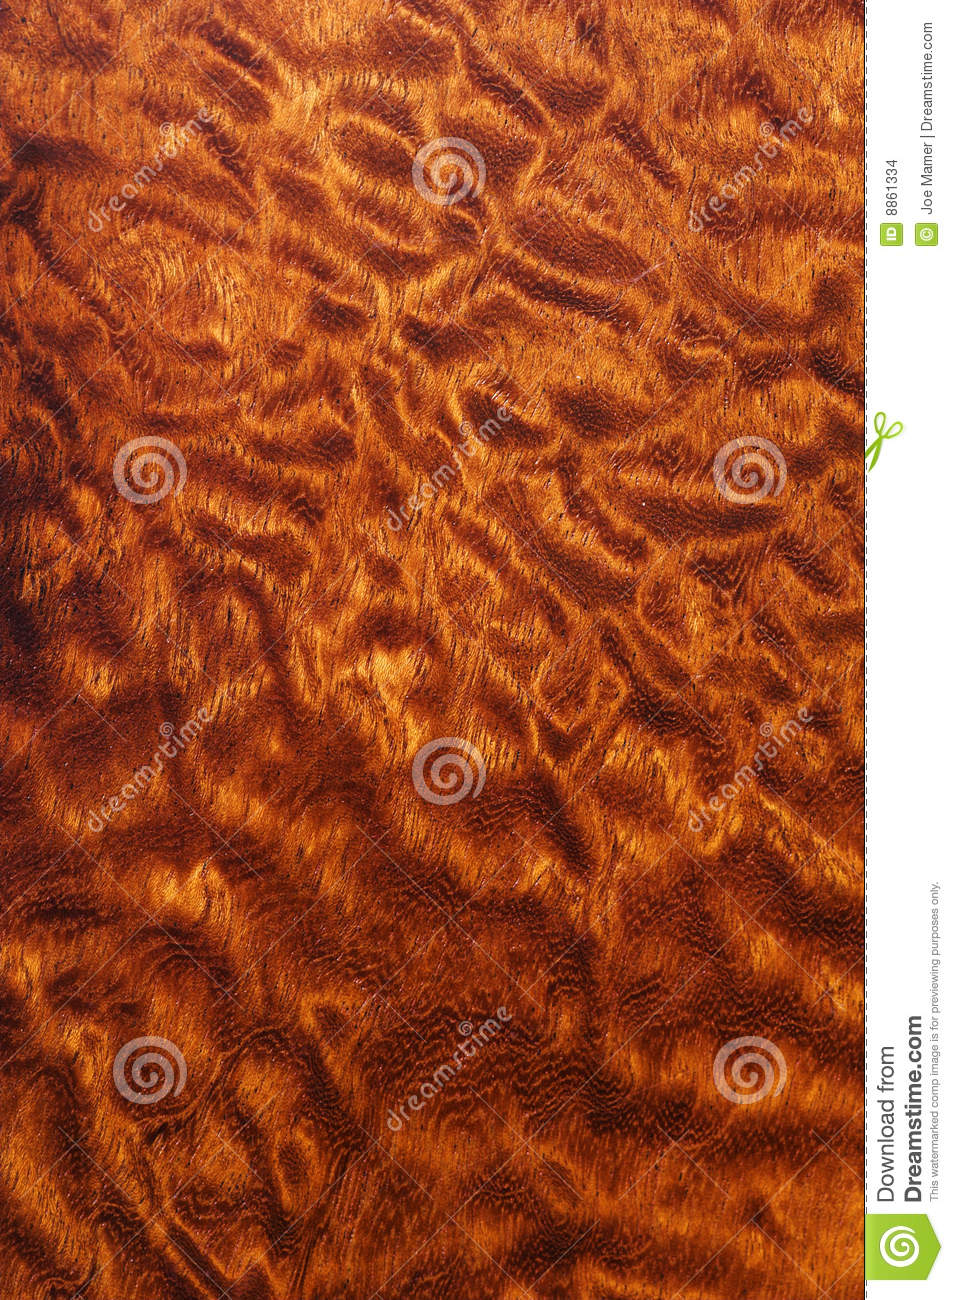 Quilted pomele sapele wood stock photo. Image of exotic - 8861334 : quilted sapele - Adamdwight.com